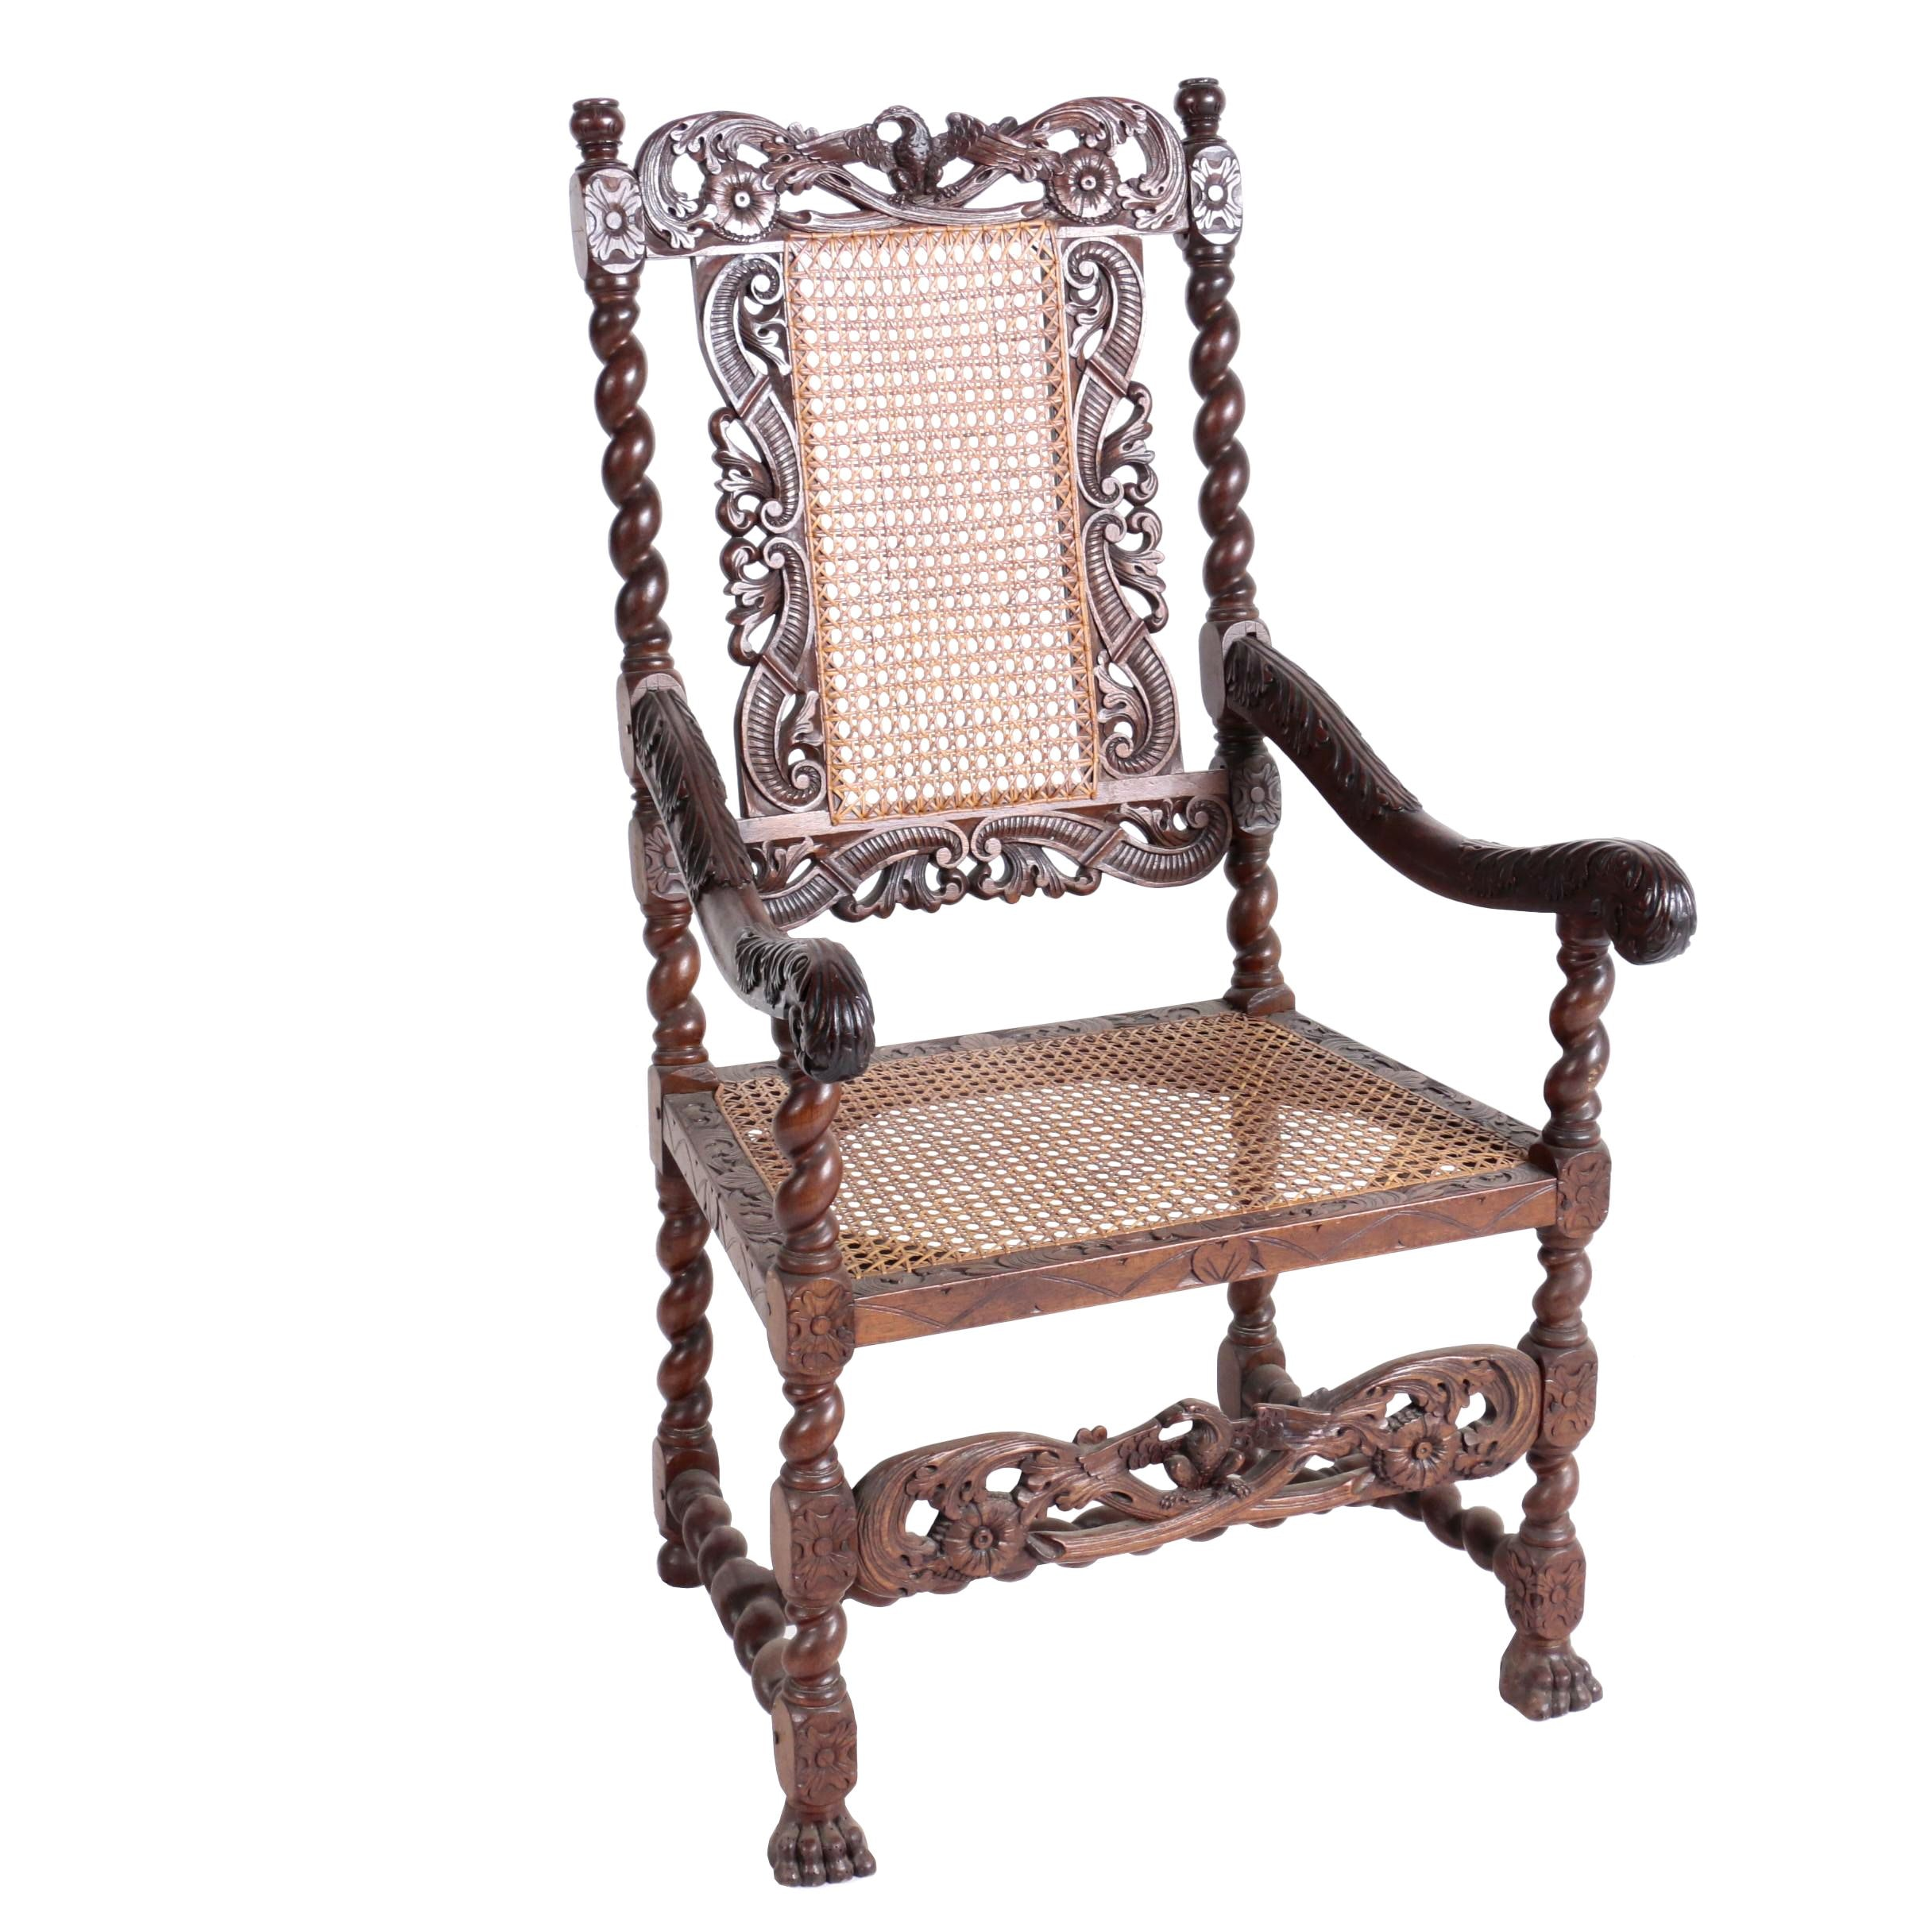 Jacobean Revival Walnut and Caned Open Armchair, Late 19th Century